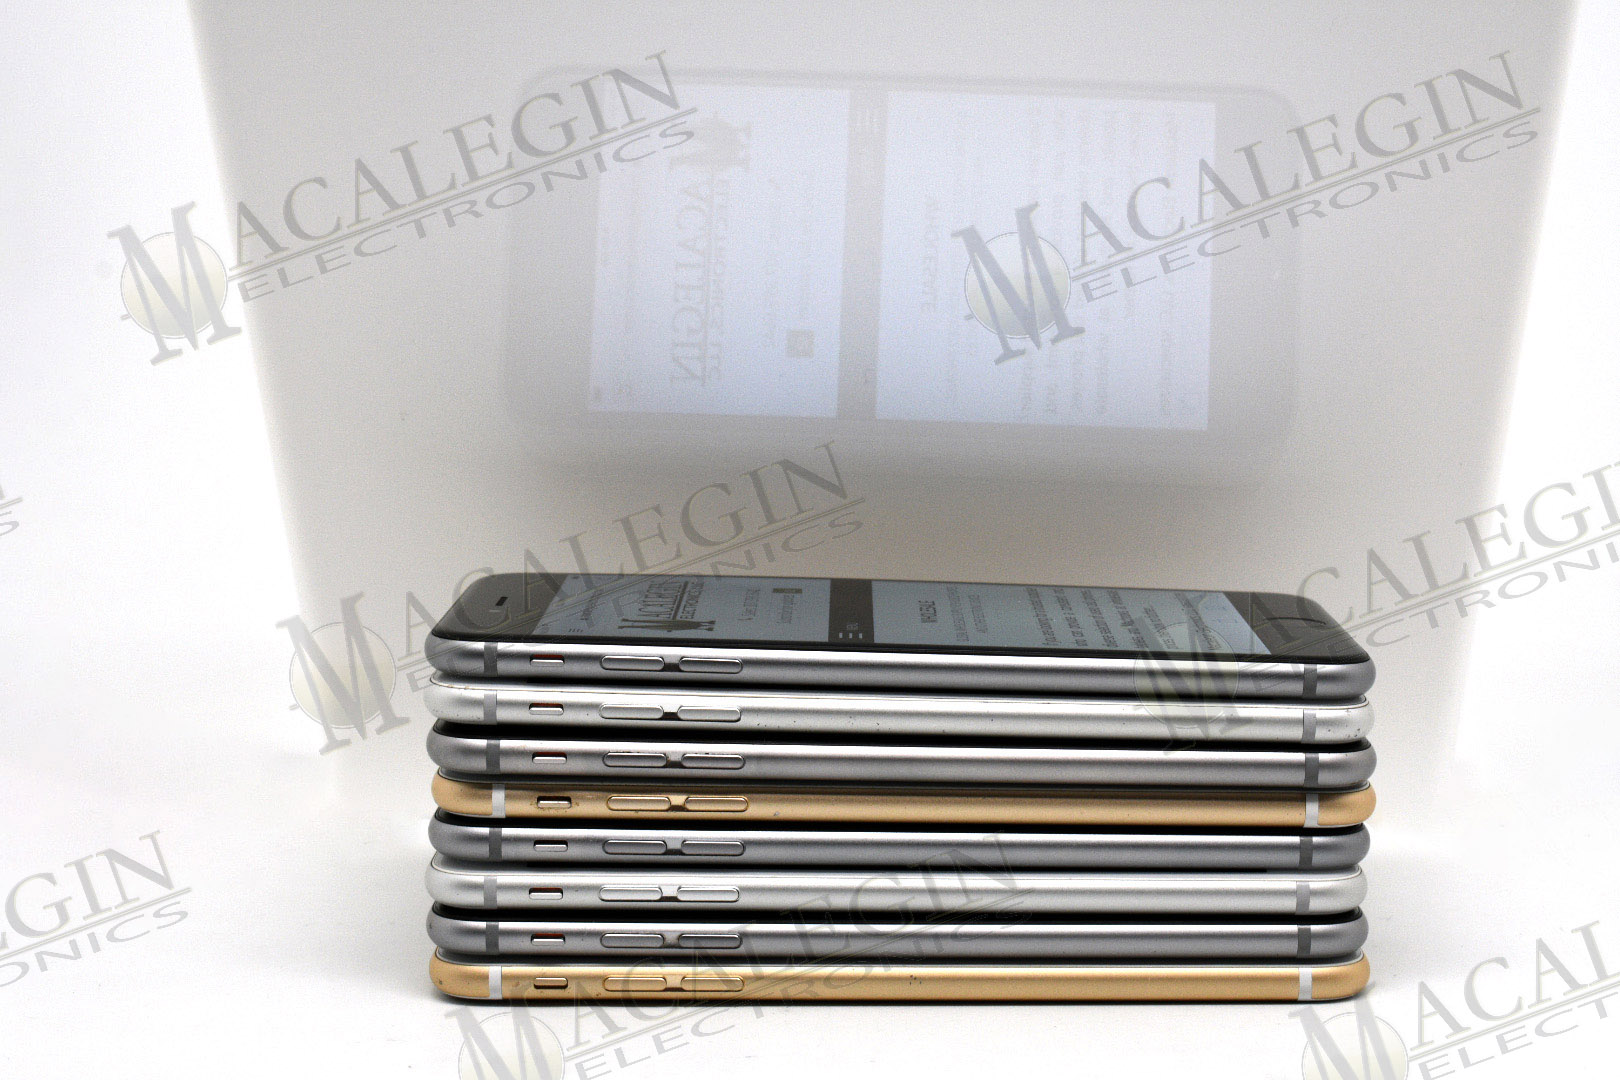 Used APPLE A1522 IPHONE 6 PLUS 16GB UNLOCKED in PGL condition for sale from Macalegin Electronics at $142 a piece.